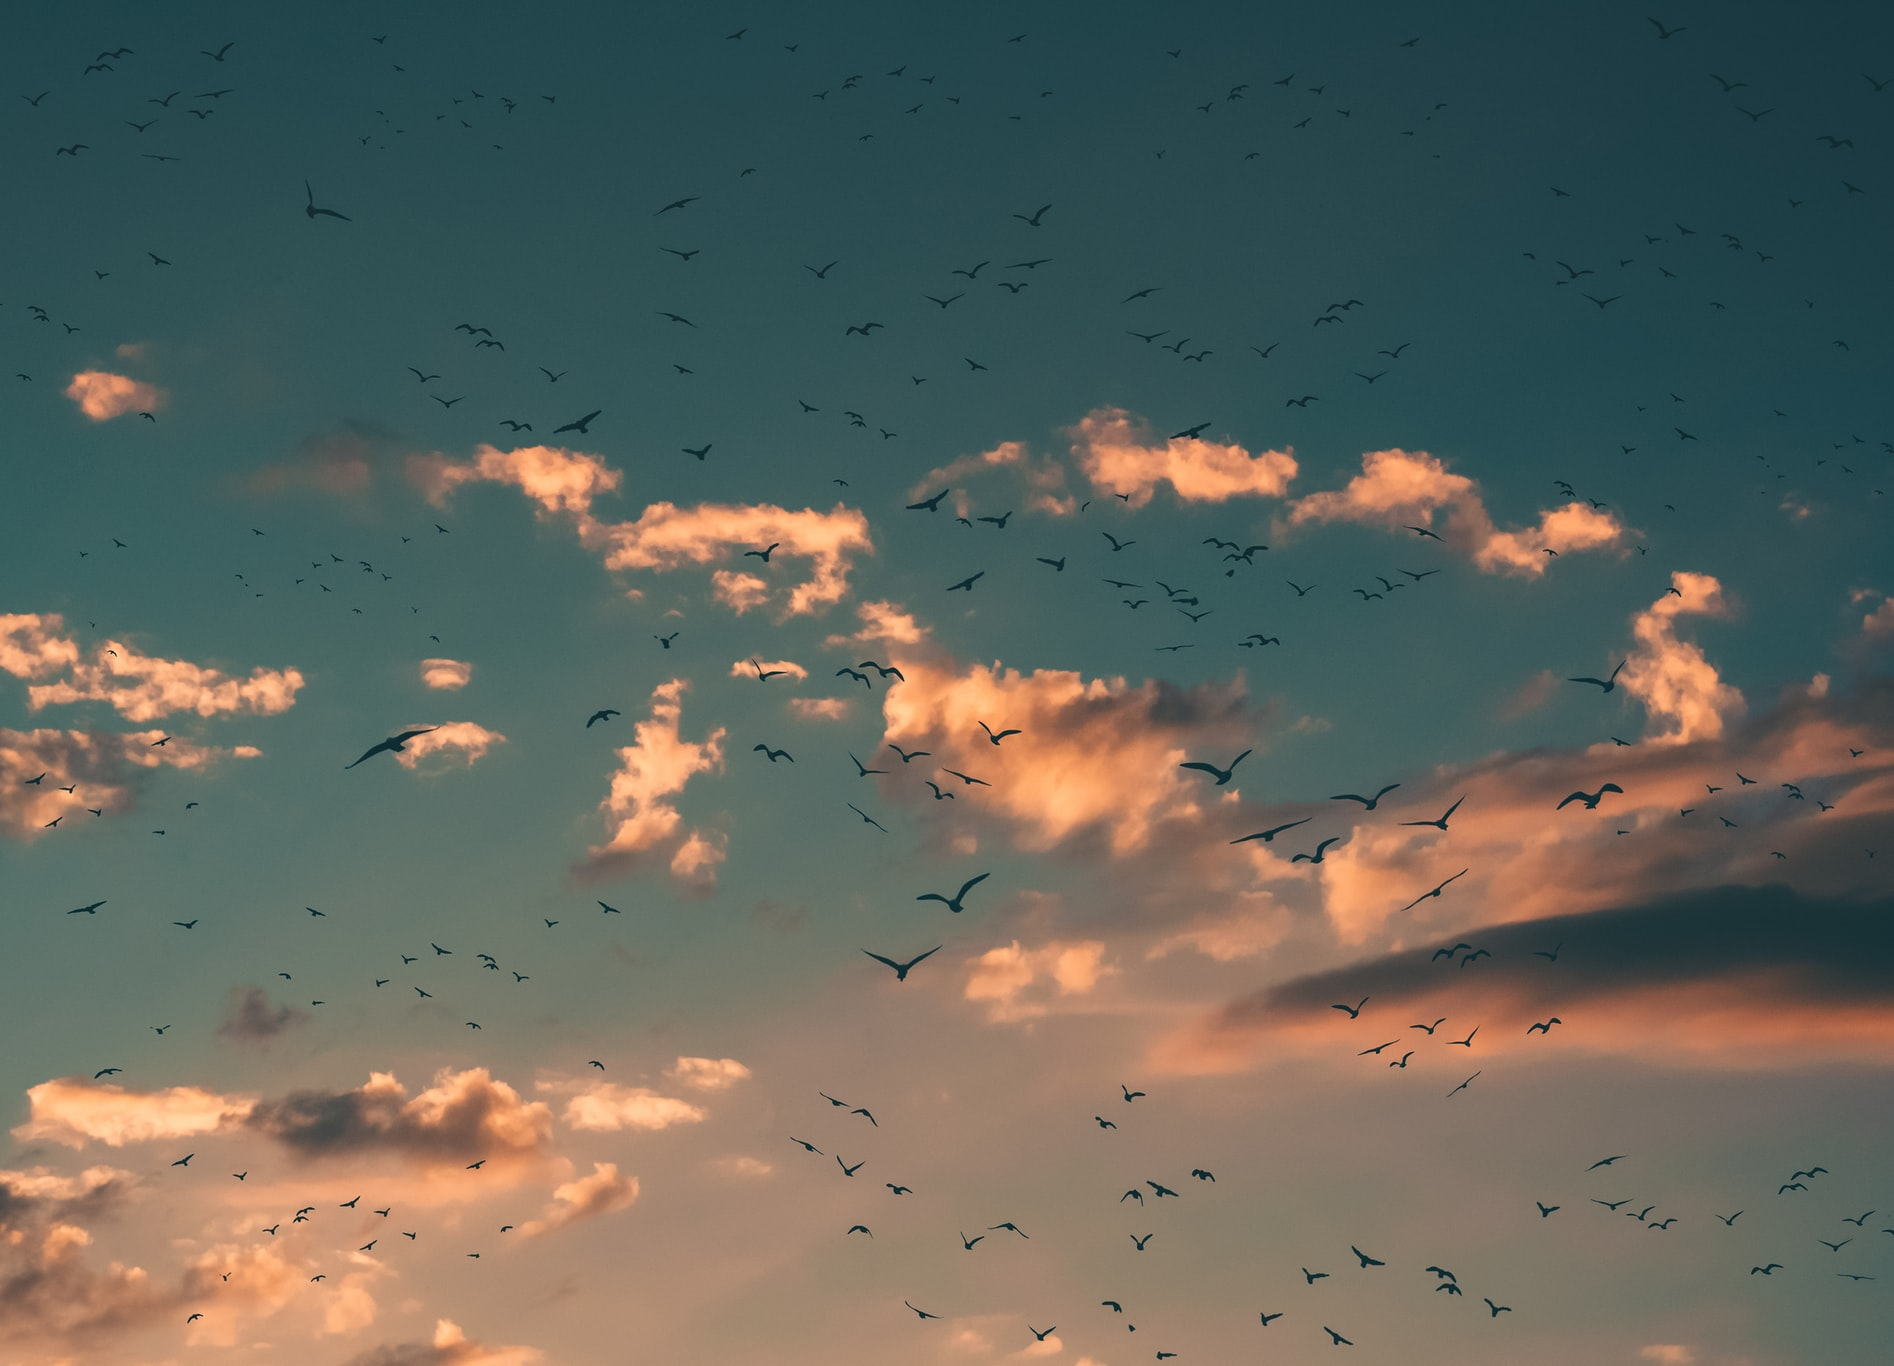 Dark Sky With Clouds and Birds